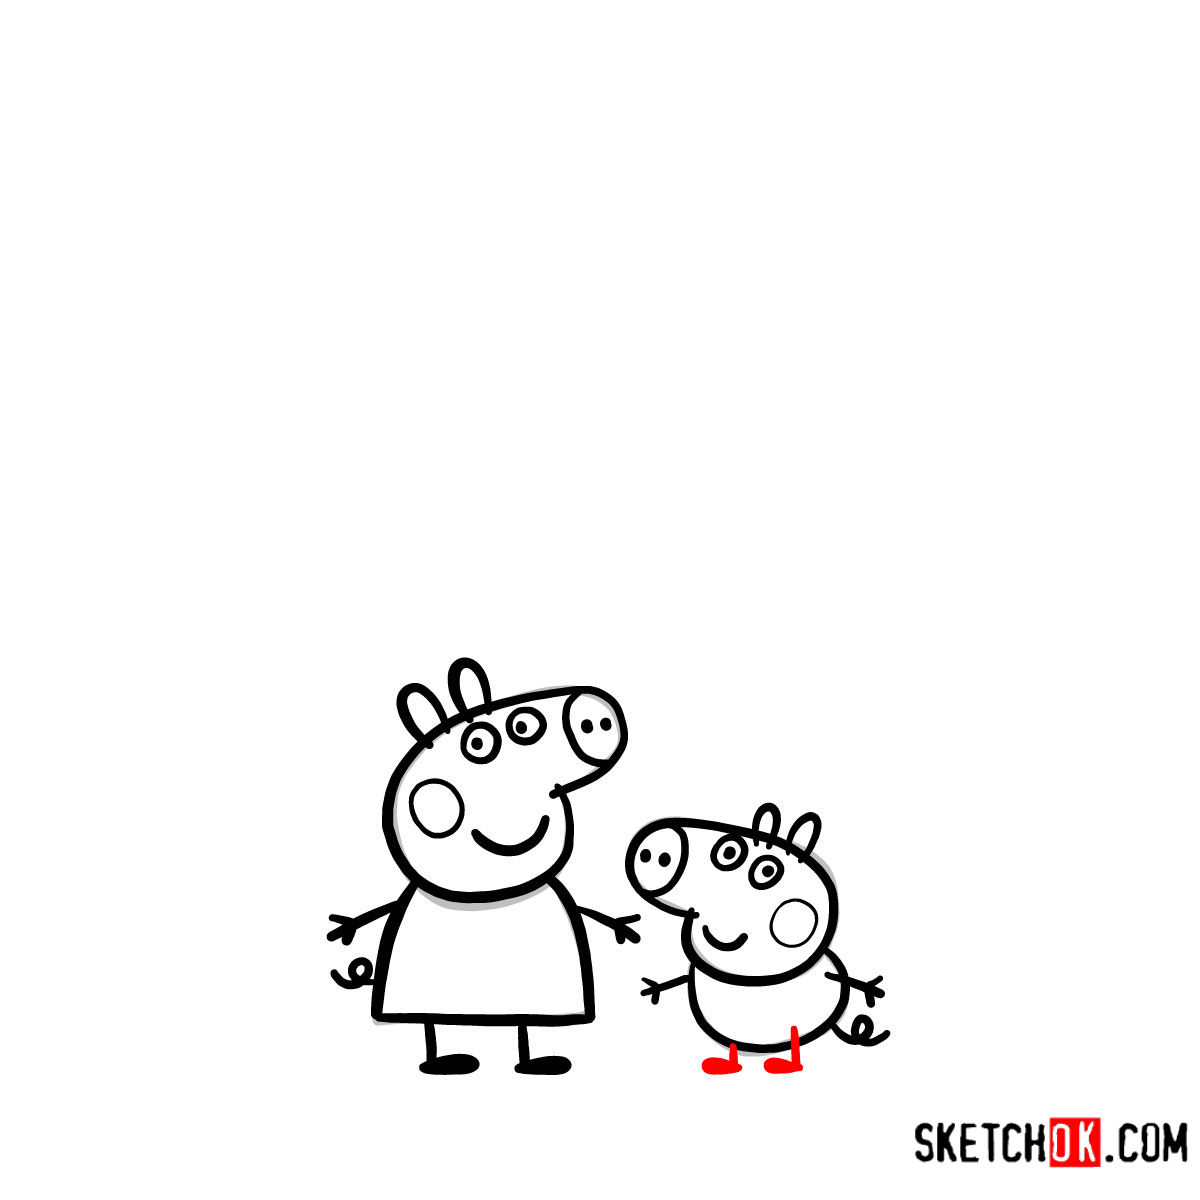 How to draw Peppa Pig's family - step 11